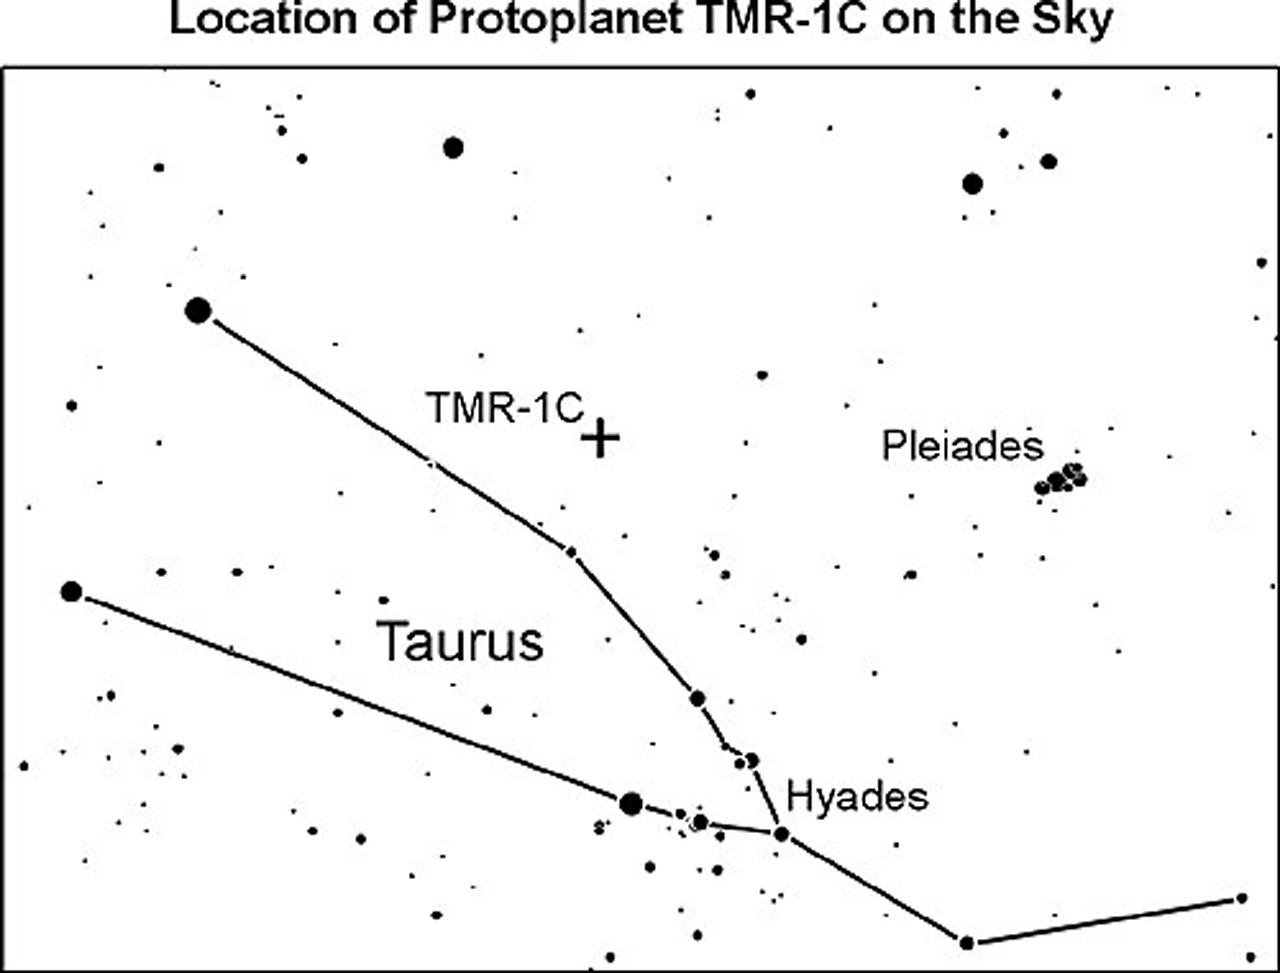 Location of TMR-1C on the Sky